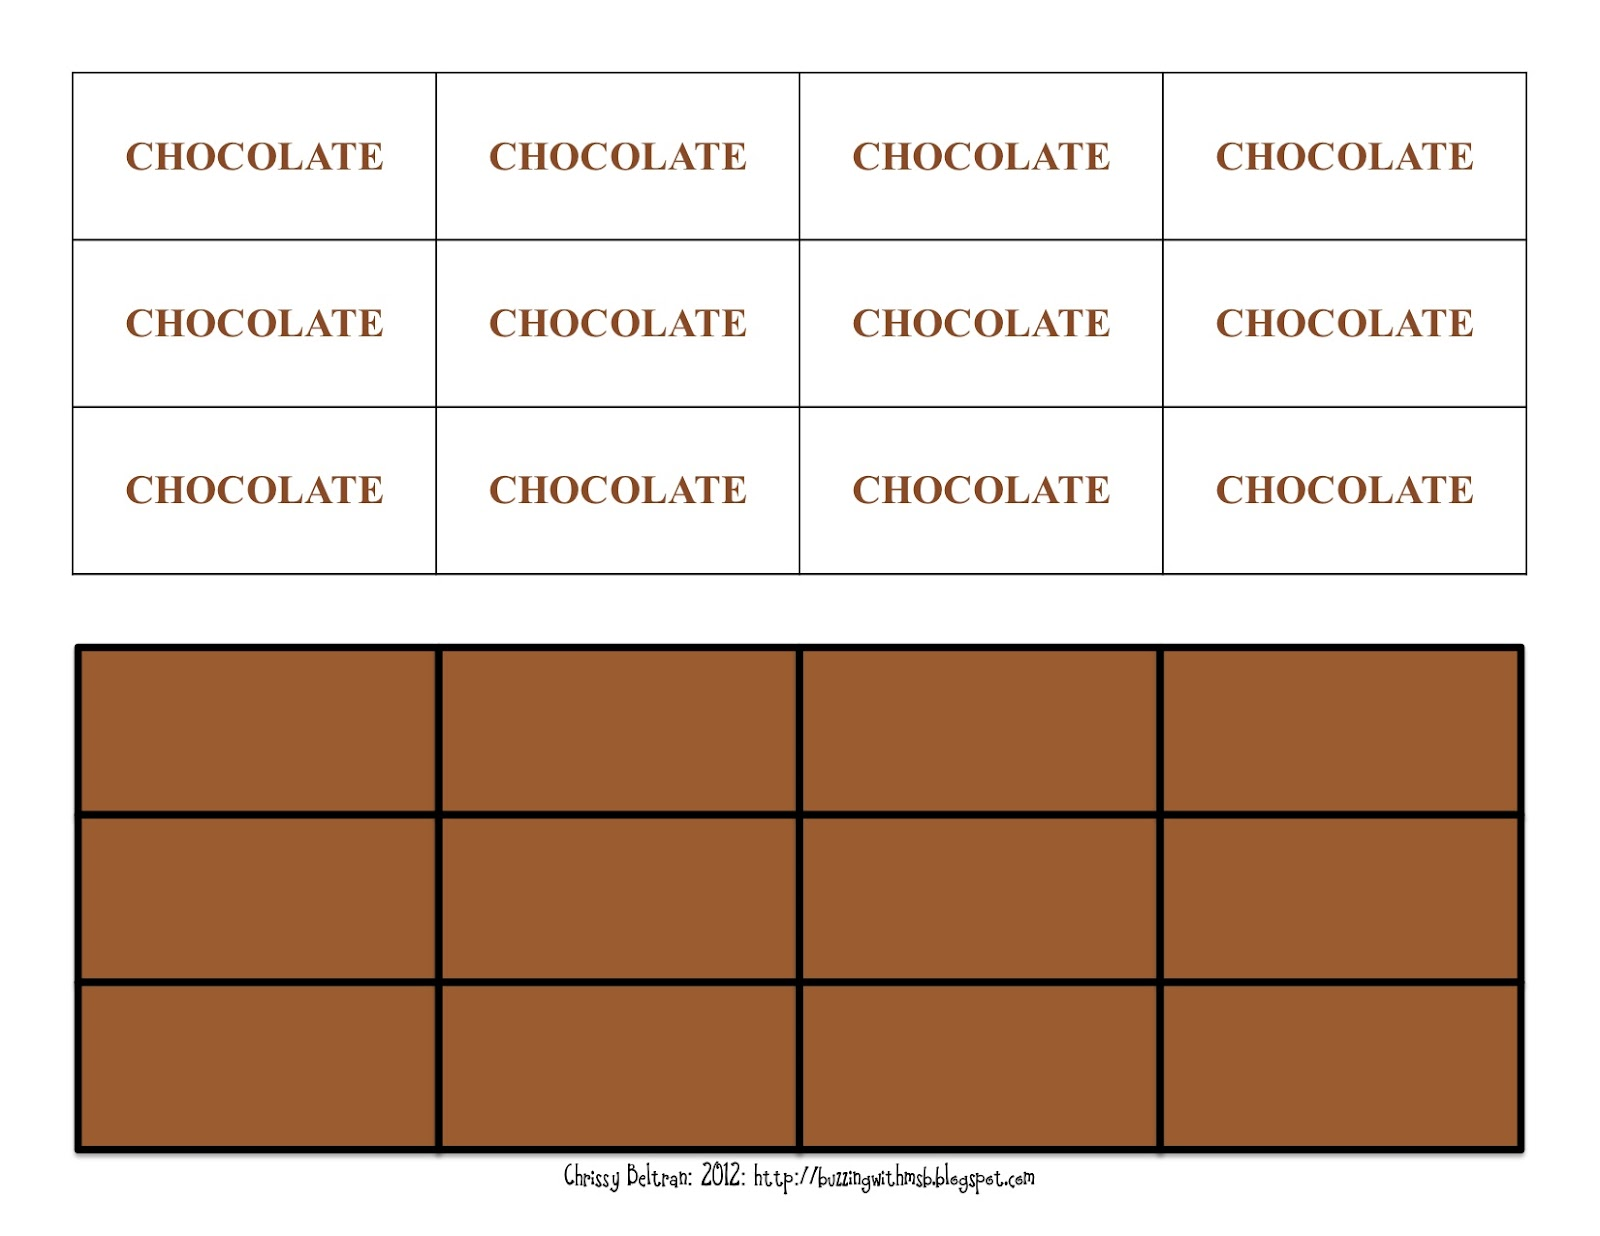 Free Resources: Hershey's Fraction Book: Chocolate Pieces